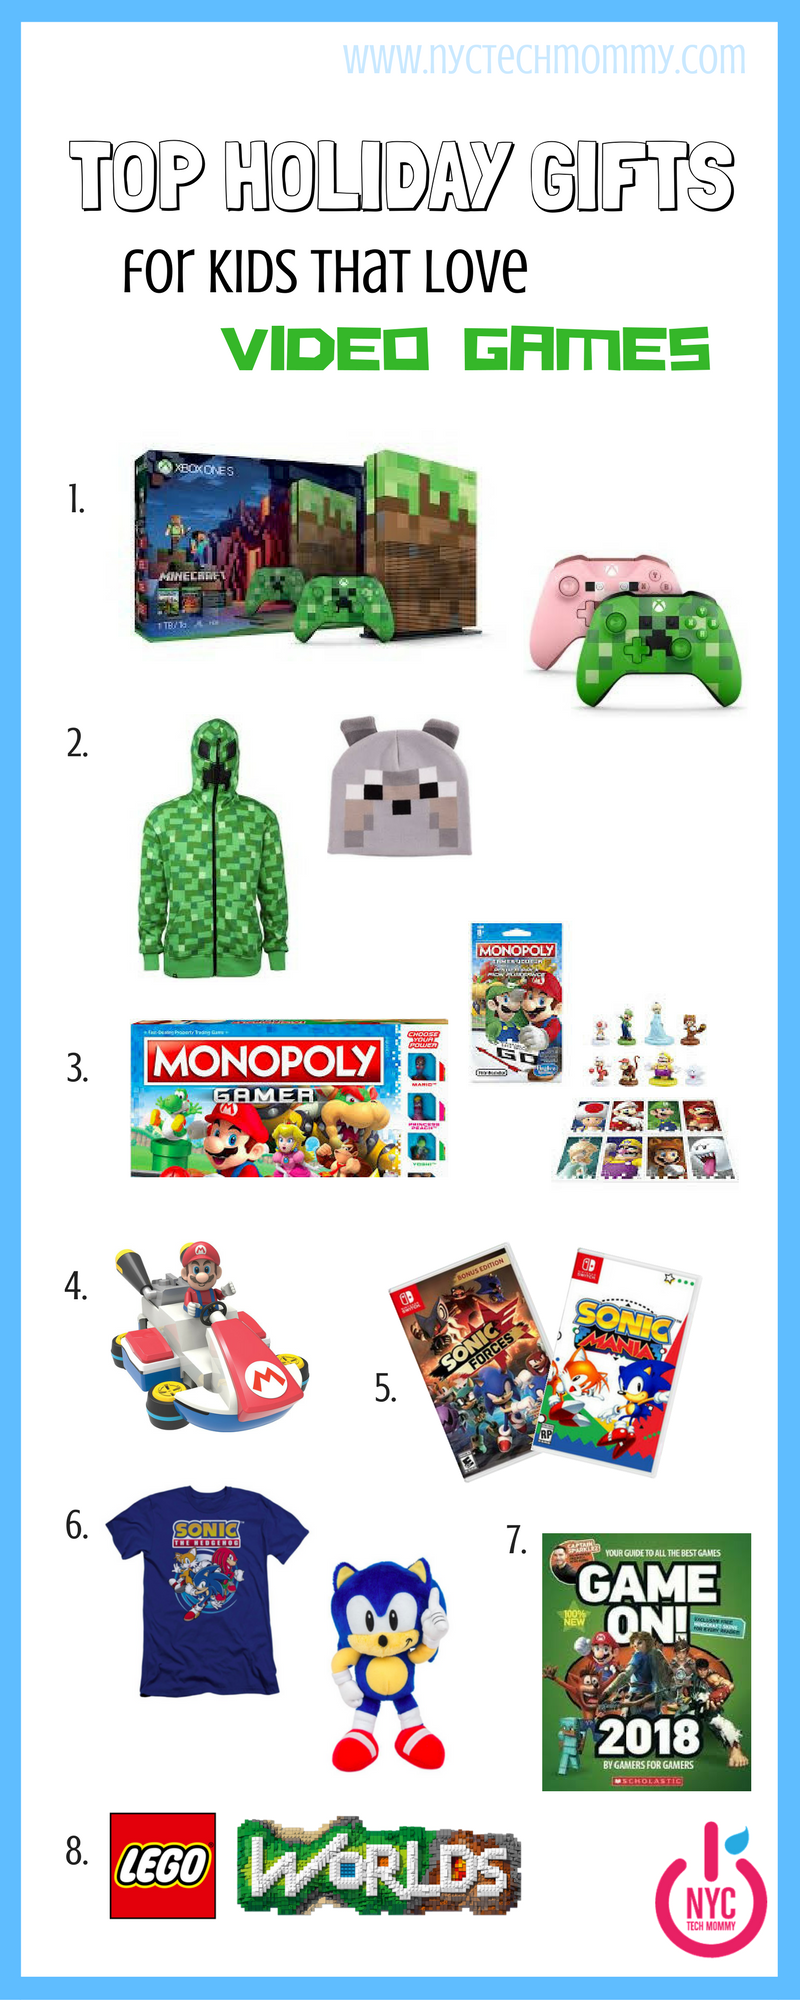 Here's our curated list of top holiday gifts for kids that love video games. Your little gamer will love each and every one of these video game related presents!